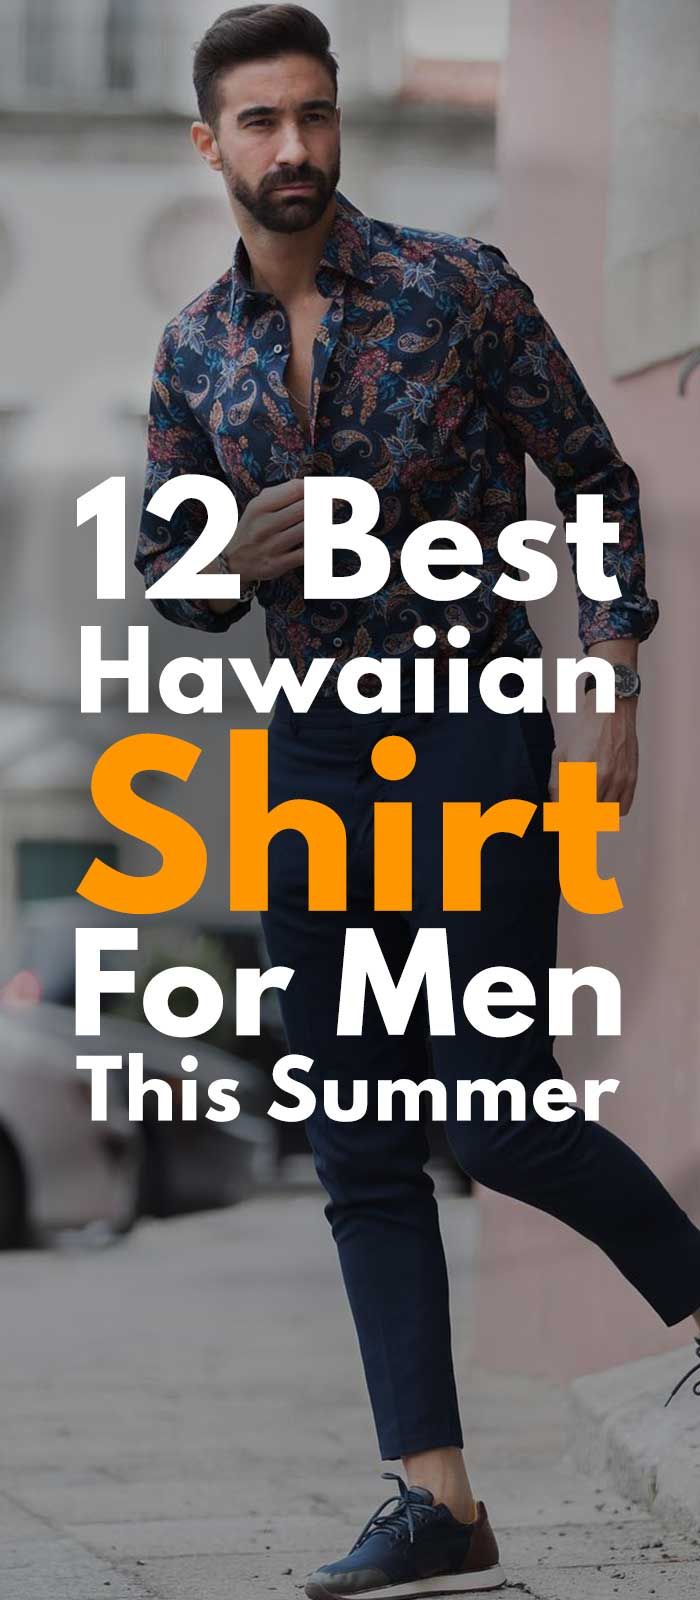 12 Best Hawaiian Shirt For Men This Summer